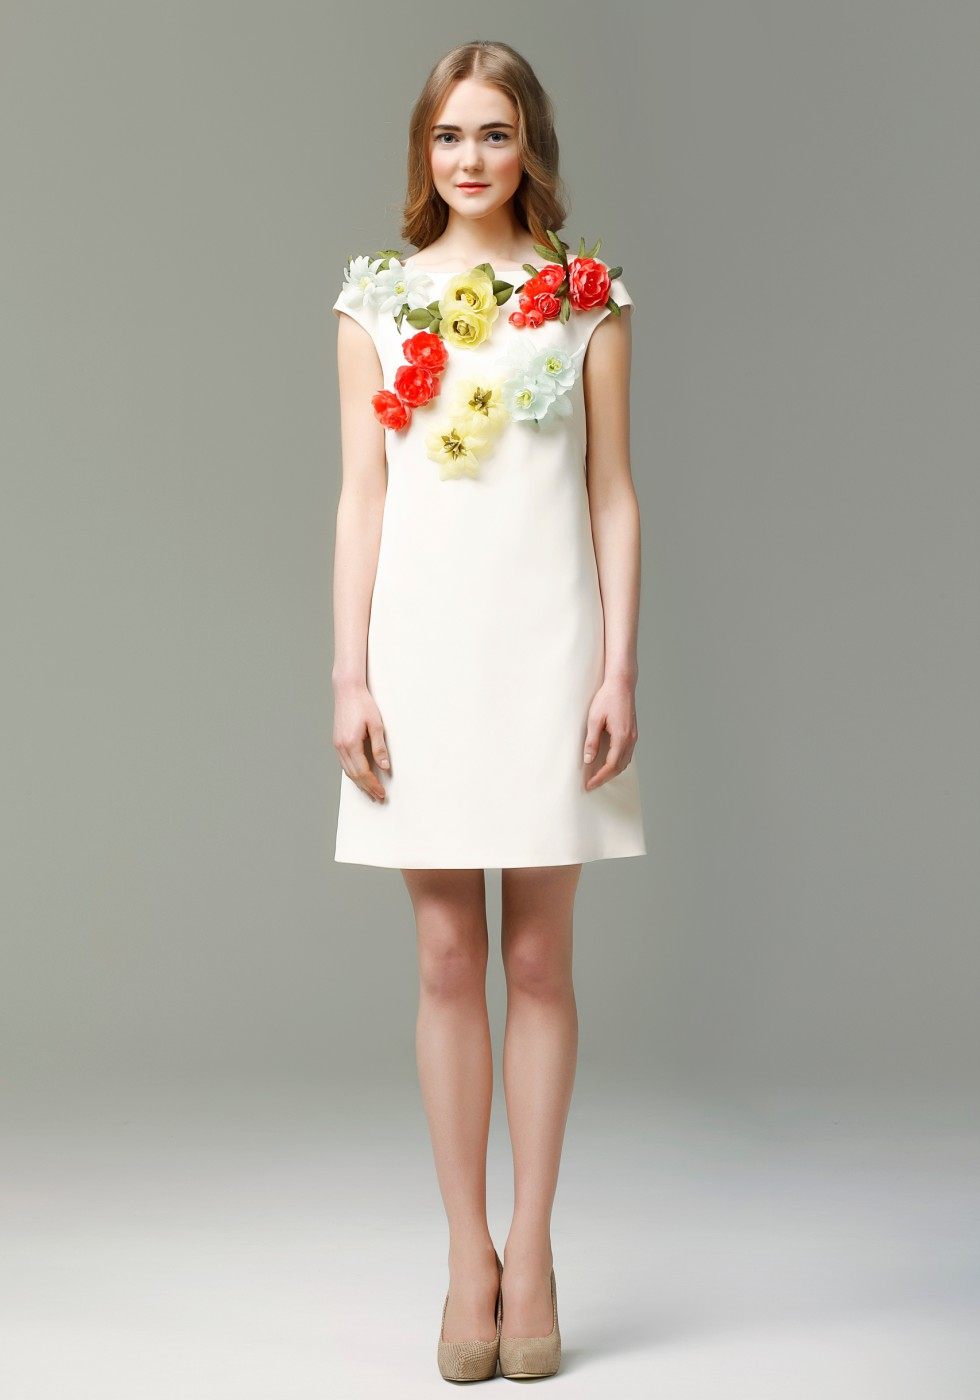 Silk crepe mini dress with flowers